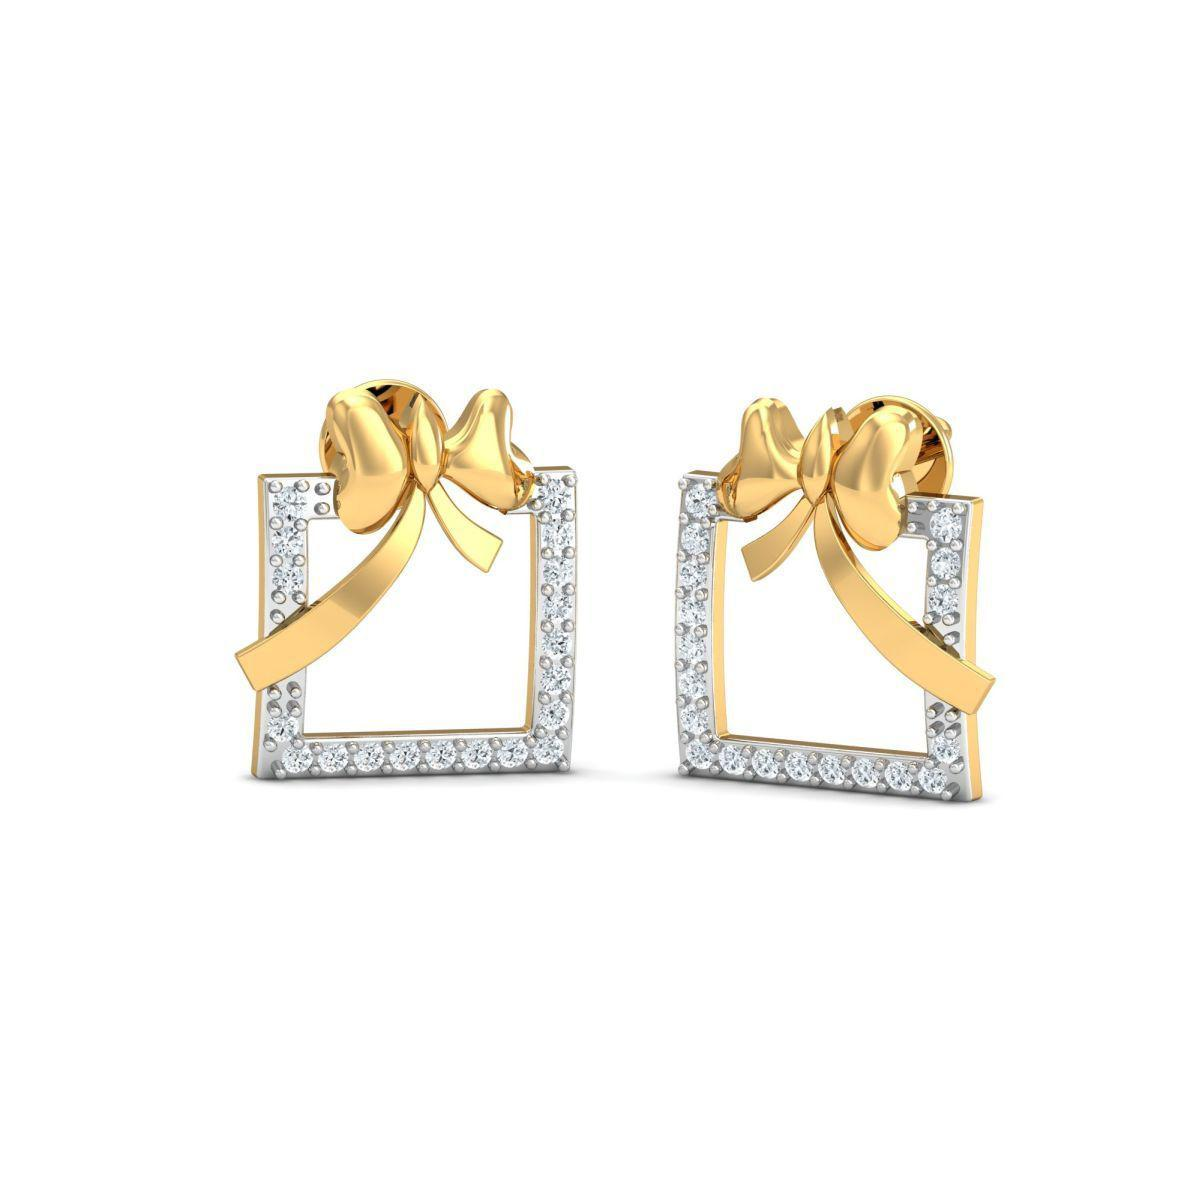 Diamoire Jewels 18kt Yellow Gold 0.14ct Pave Diamond Infinity Earrings II tvJYU